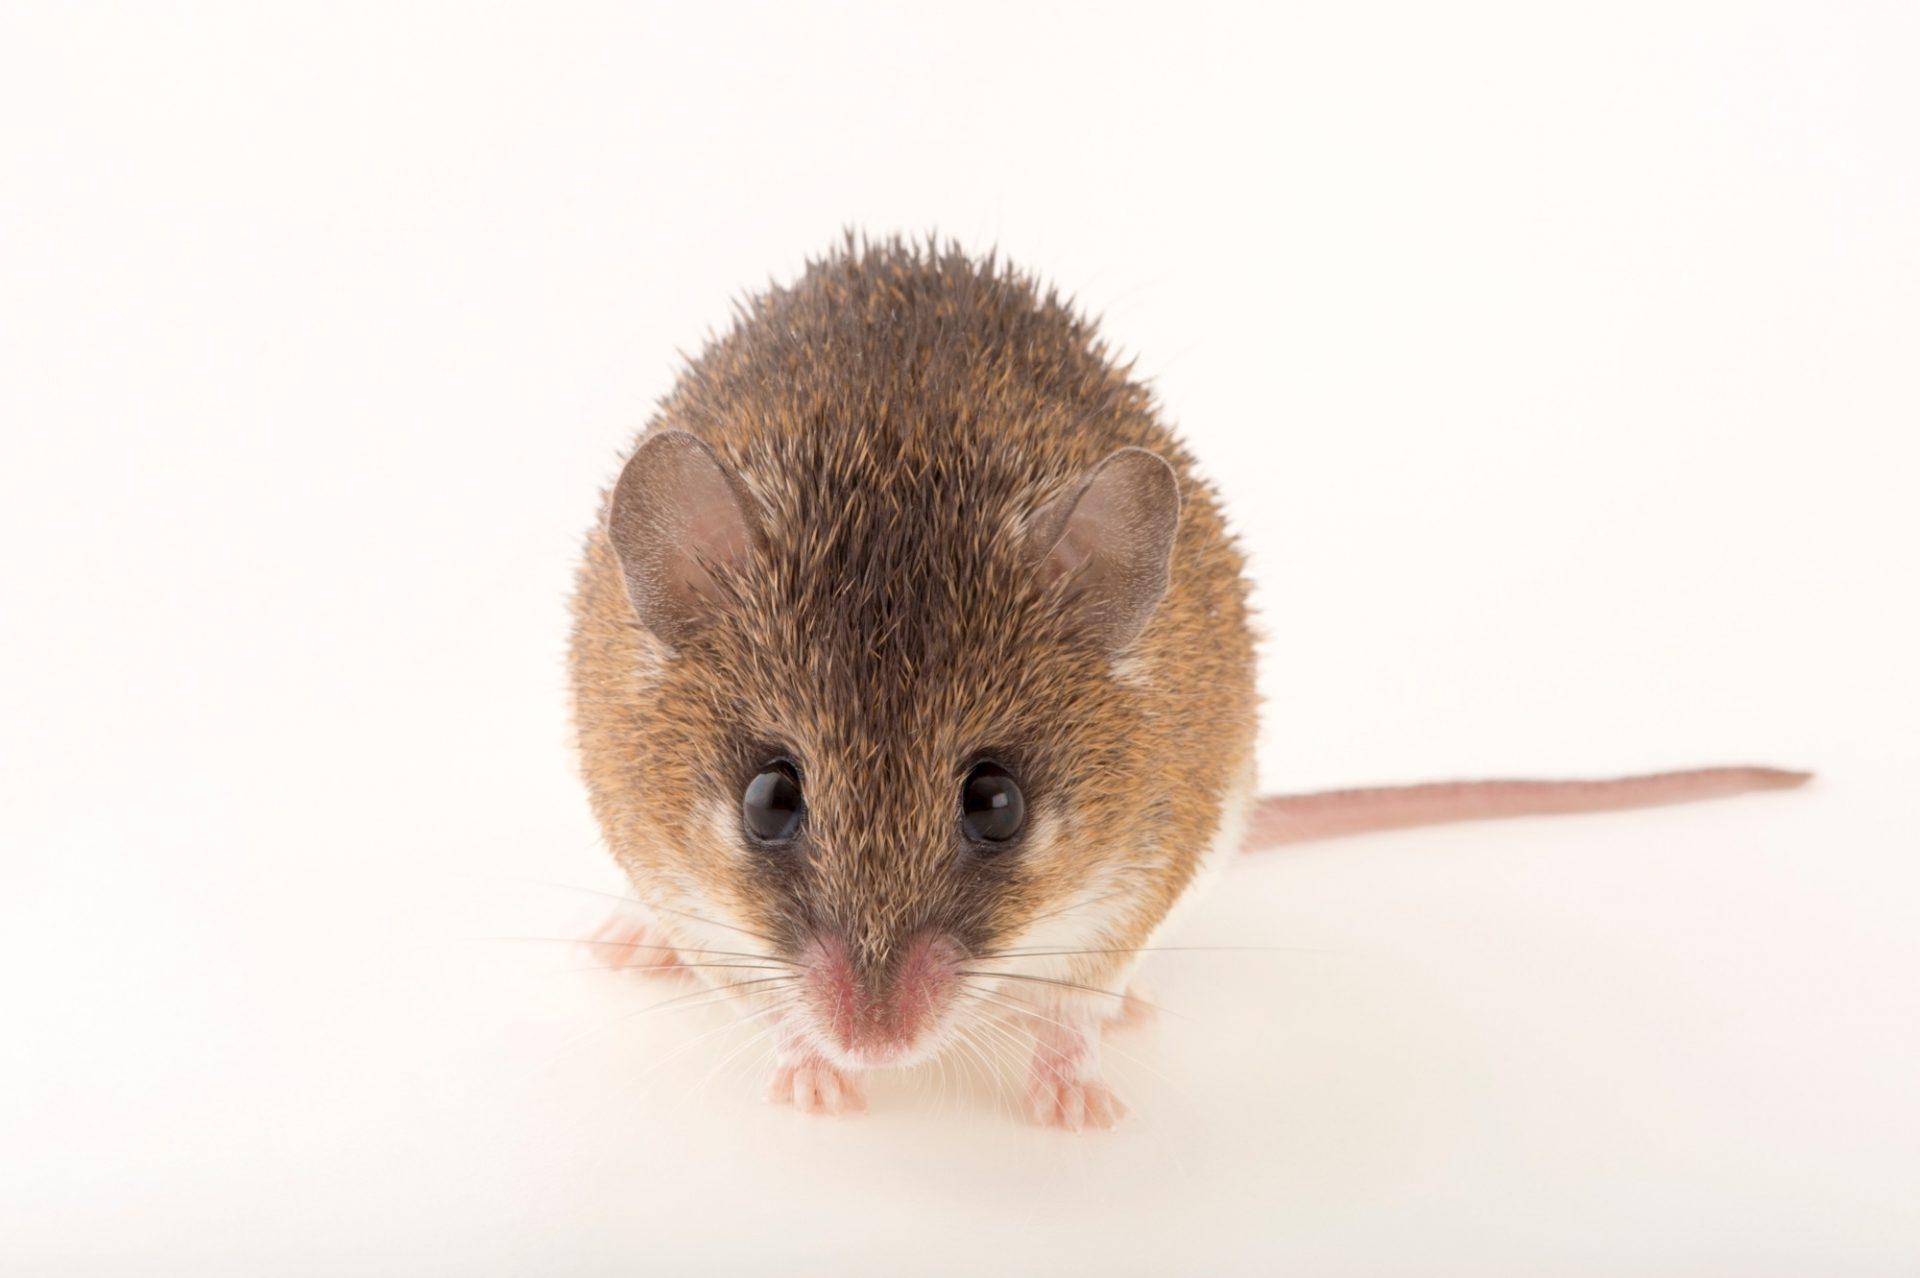 Photo: A common spiny mouse (Acomys spinosissimus) at the Plzen Zoo.